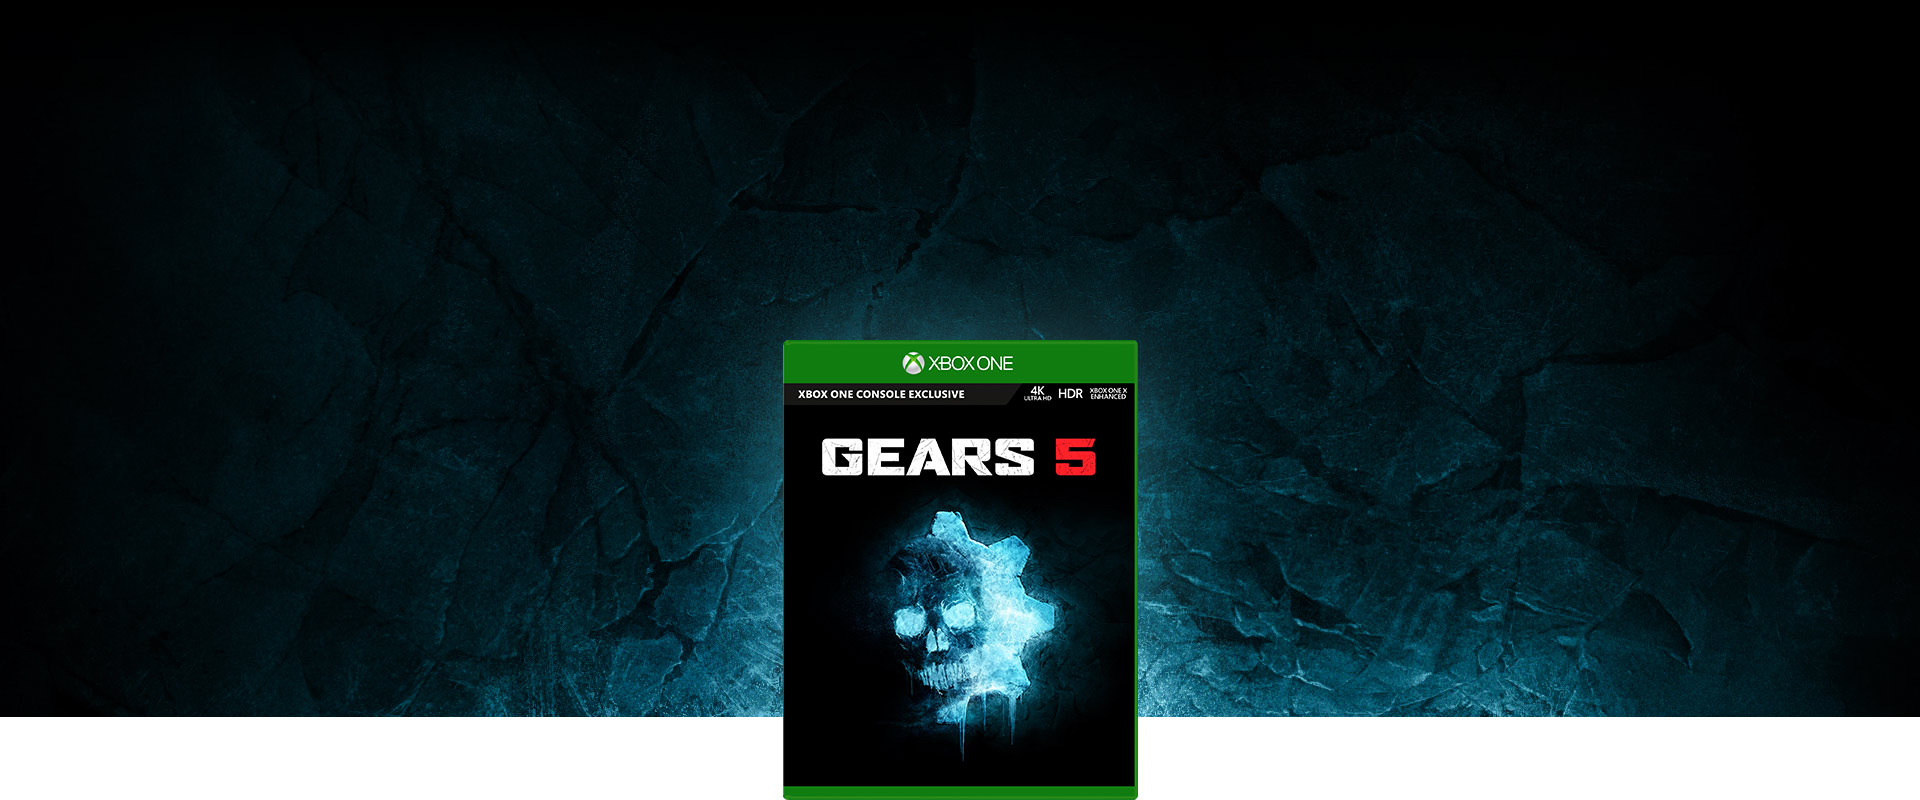 Gears 5 game box on a glowing blue stone background